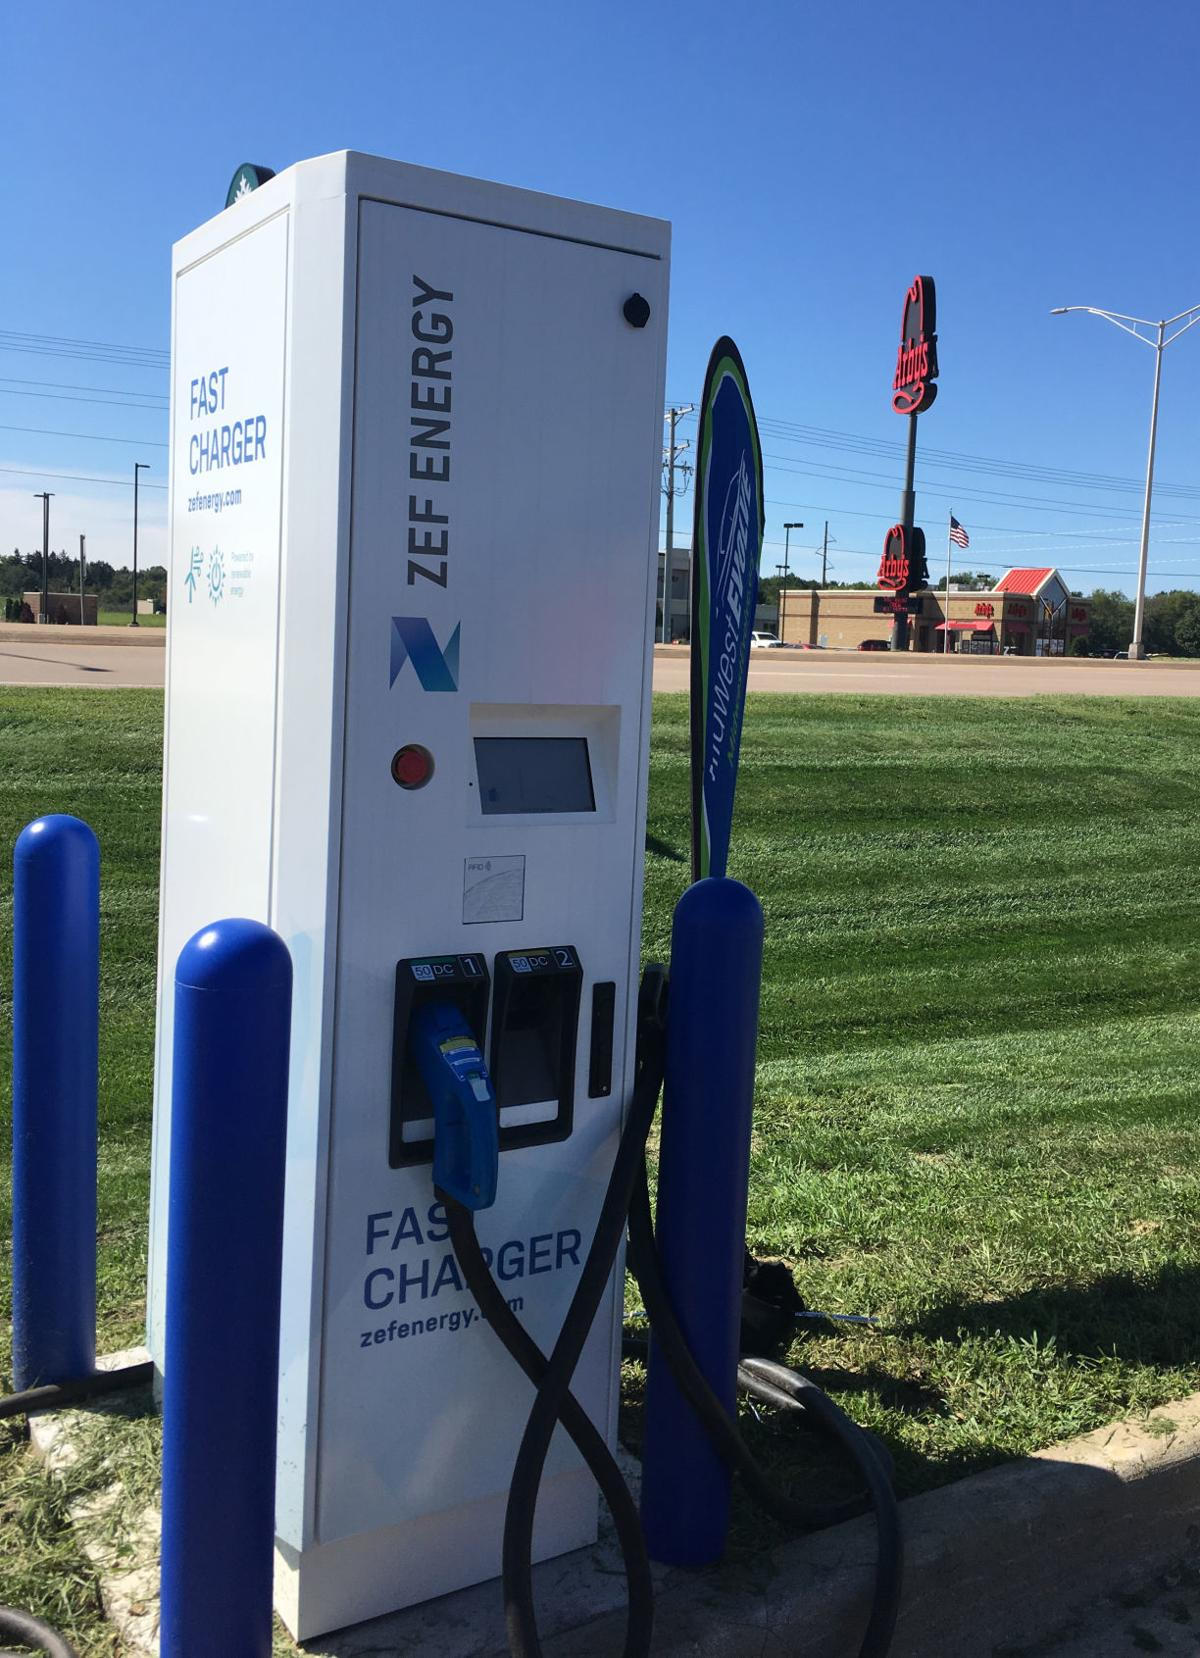 A Grand Opening Celebration And Ribbon Cutting Was Held For The Dc Fast Charger At New Electric Vehicle Charging Station Ground Round In Tomah